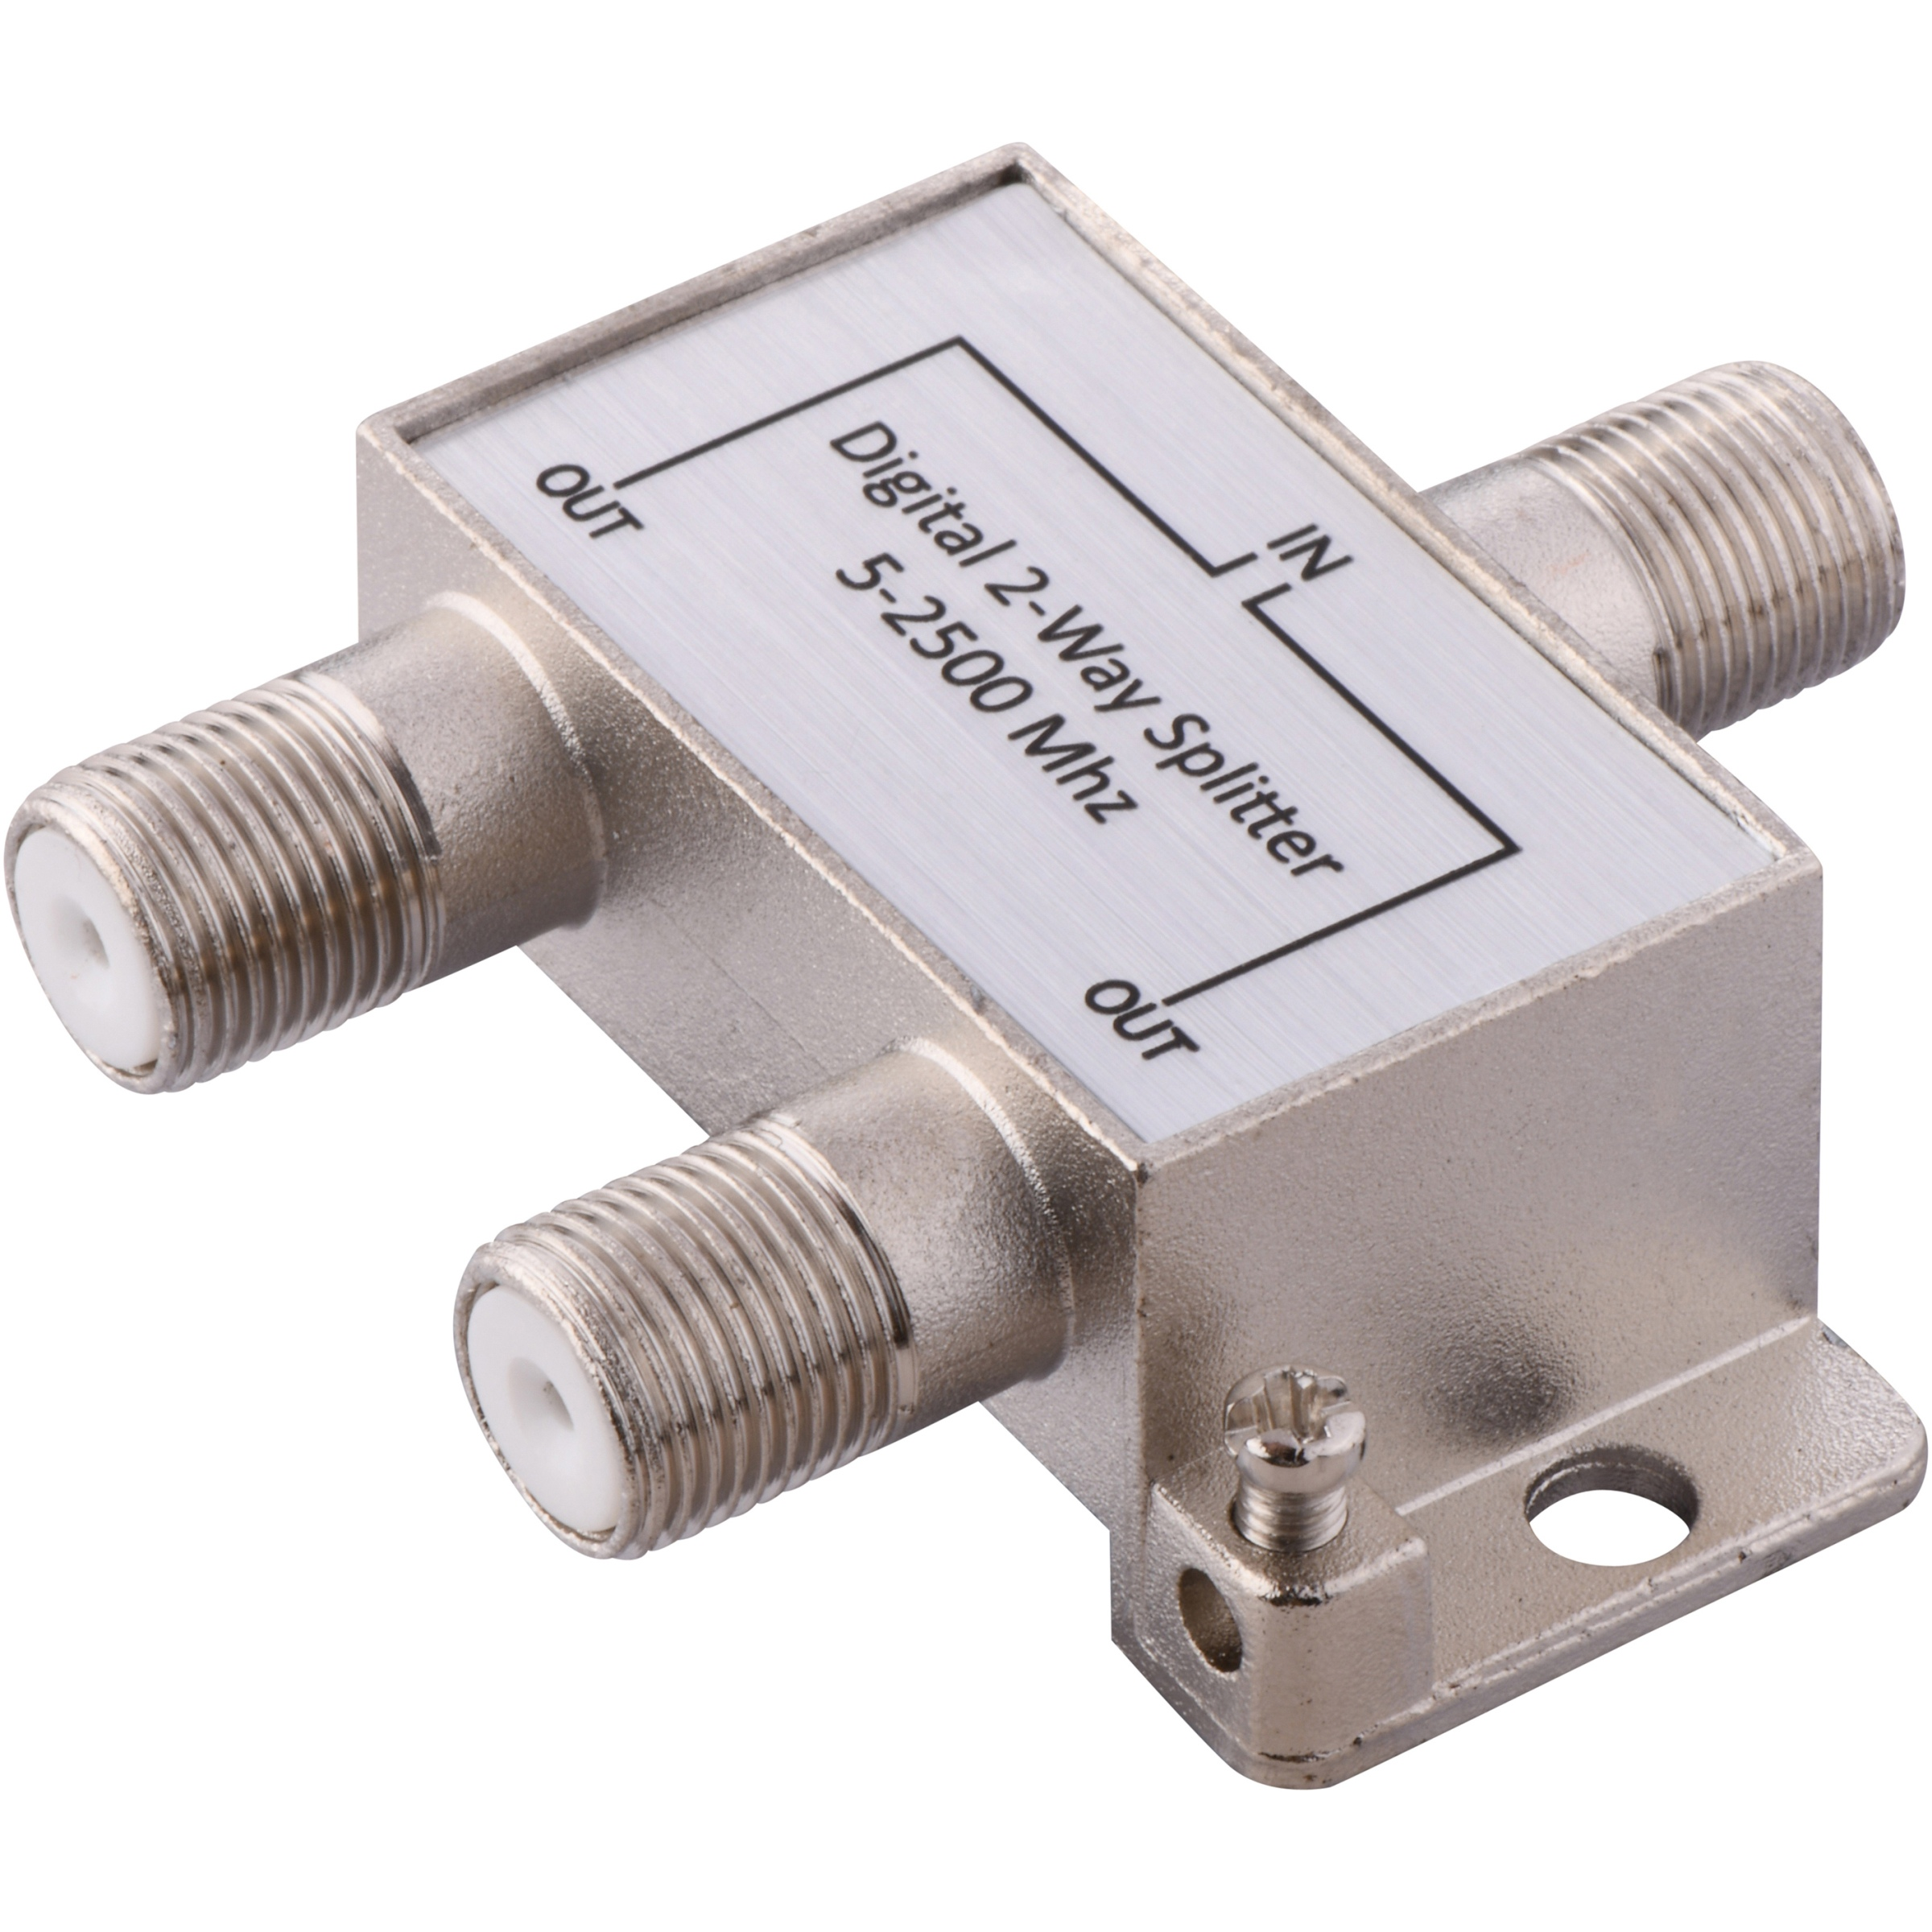 Onn Digital Coaxial 2-Way Cable Splitter